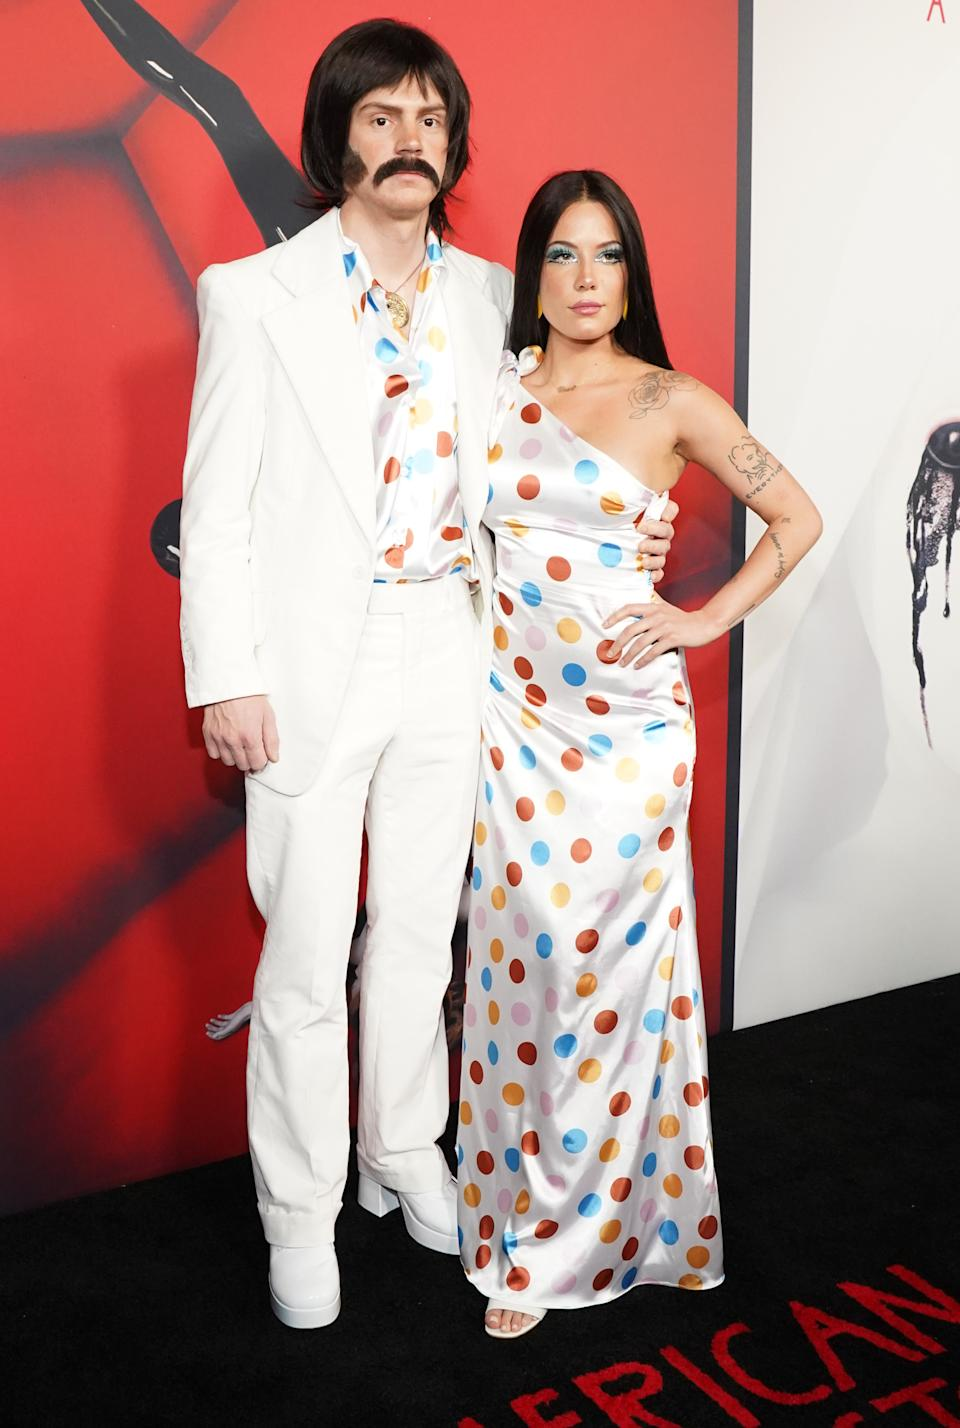 """HOLLYWOOD, CALIFORNIA - OCTOBER 26: (L-R) Evan Peters and Halsey attend FX's """"American Horror Story"""" 100th Episode Celebration at Hollywood Forever on October 26, 2019 in Hollywood, California. (Photo by Rachel Luna/FilmMagic)"""